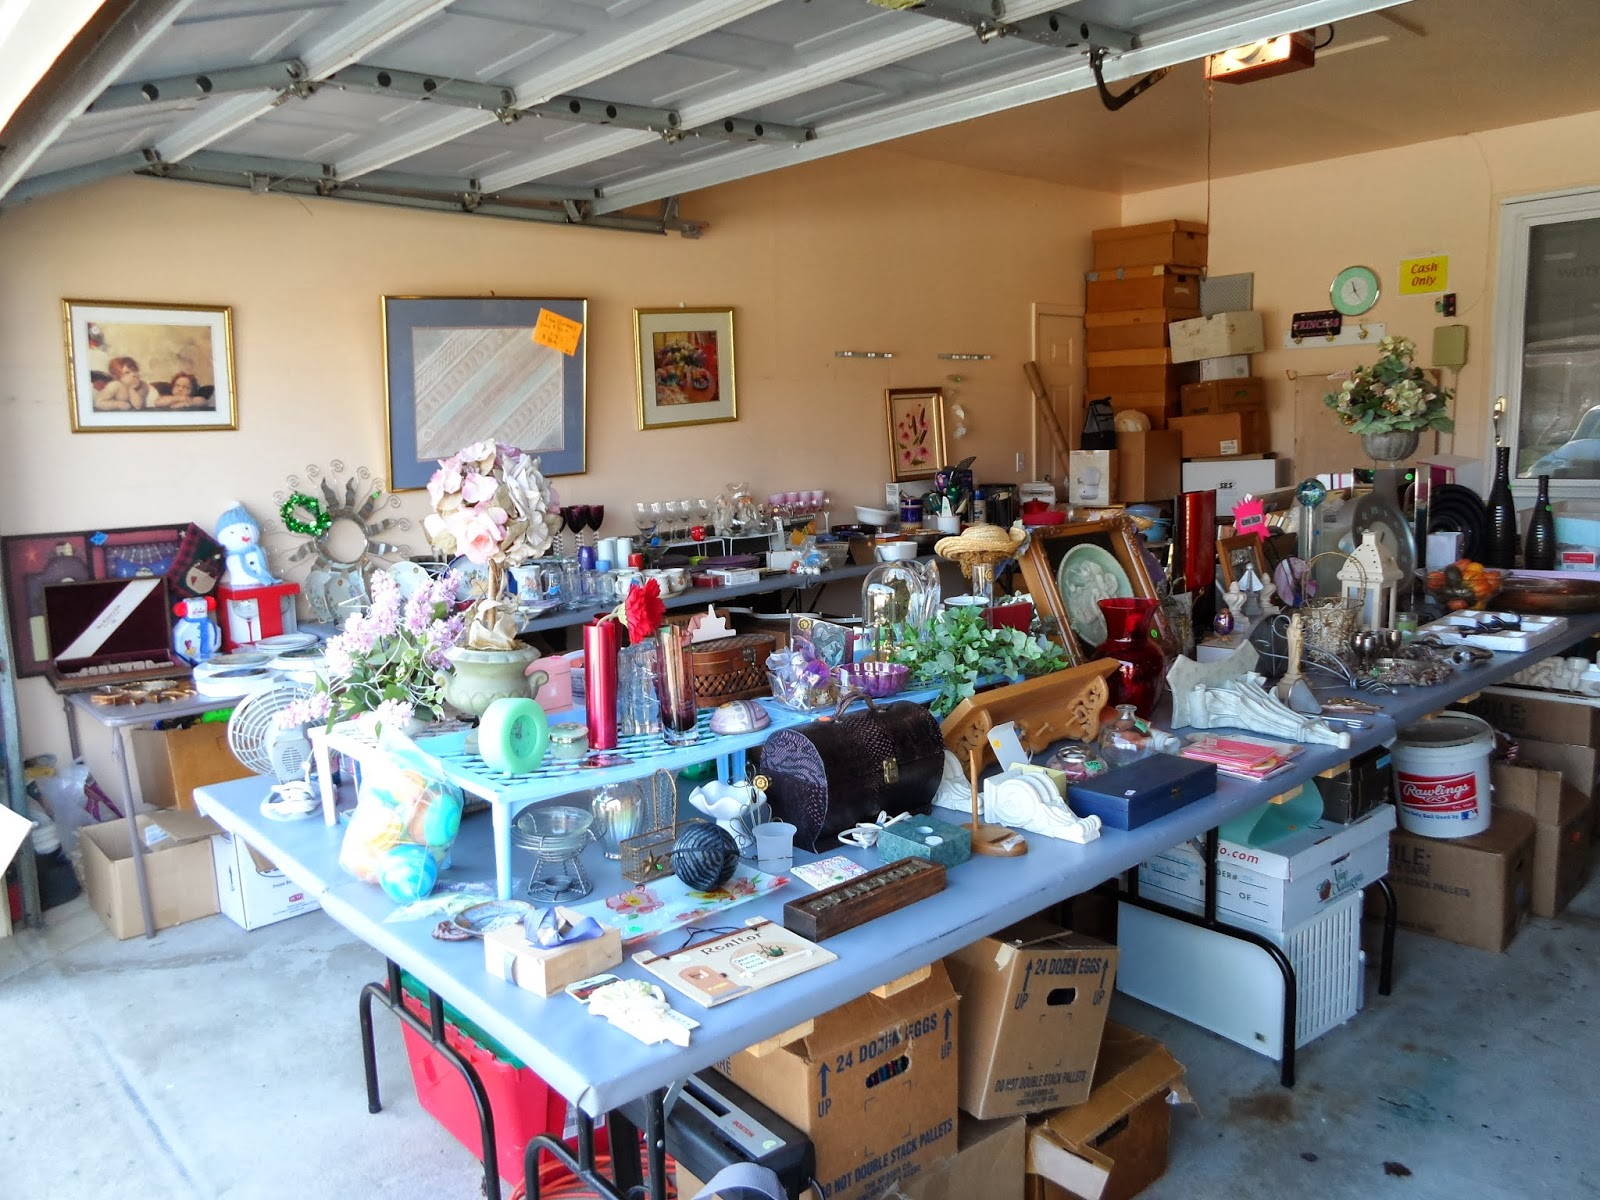 Charming Garage Sale Ideas Organize Part - 11: Hints To Help Organize Your Garage Sale